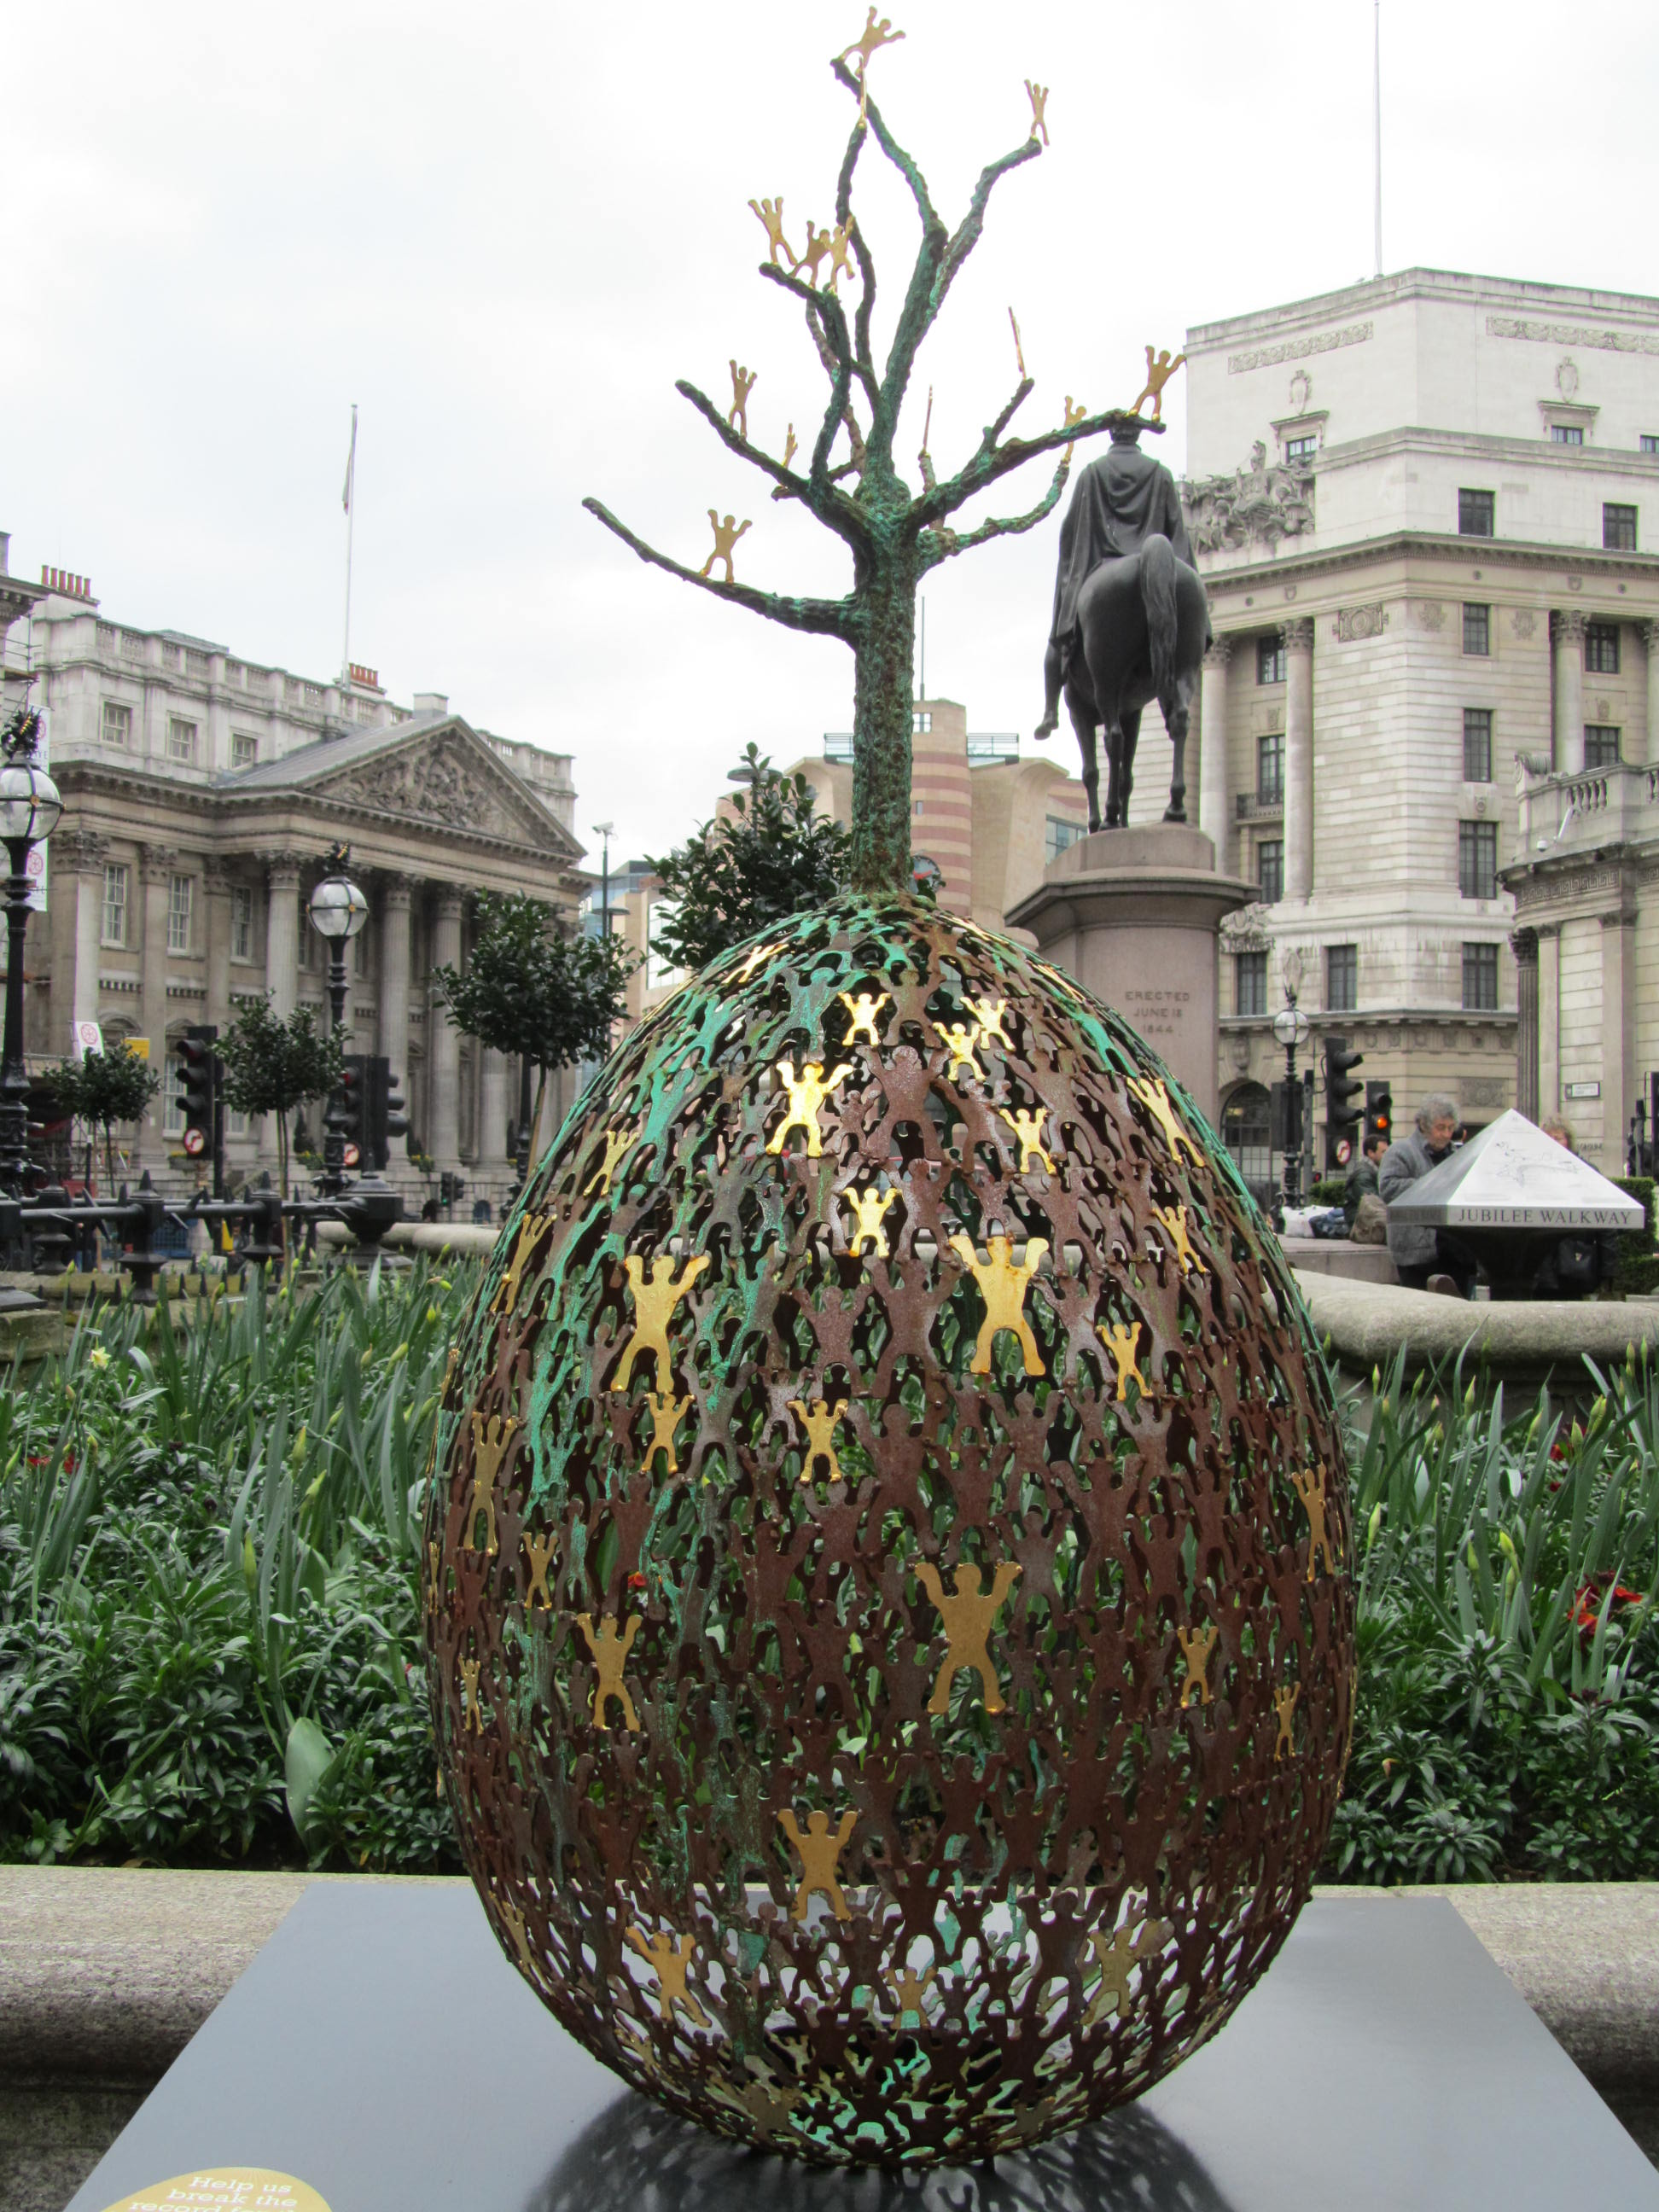 Anima Mundi - Commissioned for The Faberge Big Egg Hunt, Anima Mundi was displayed outside Bank in the City of London.